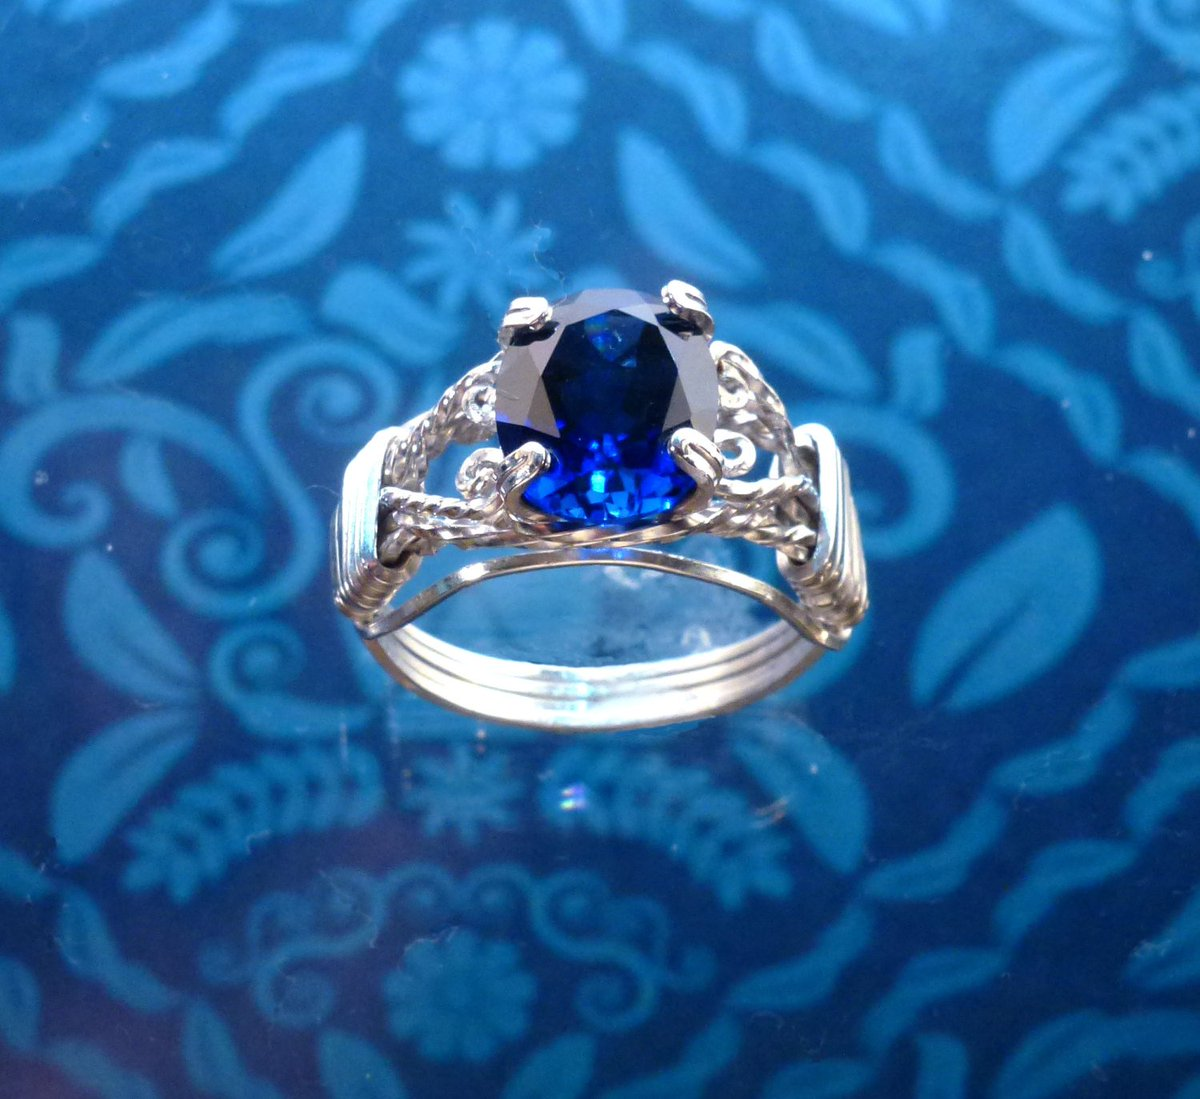 Blue Sapphire Ring Wire Wrapped Womans Jewelry Handmade in SIlver FREE SHIPPING https://etsy.me/2ru1aas  #etsy #etsymntt #handmade #jewelry #bohemian #fashion #etsygifts #handmadejewelry